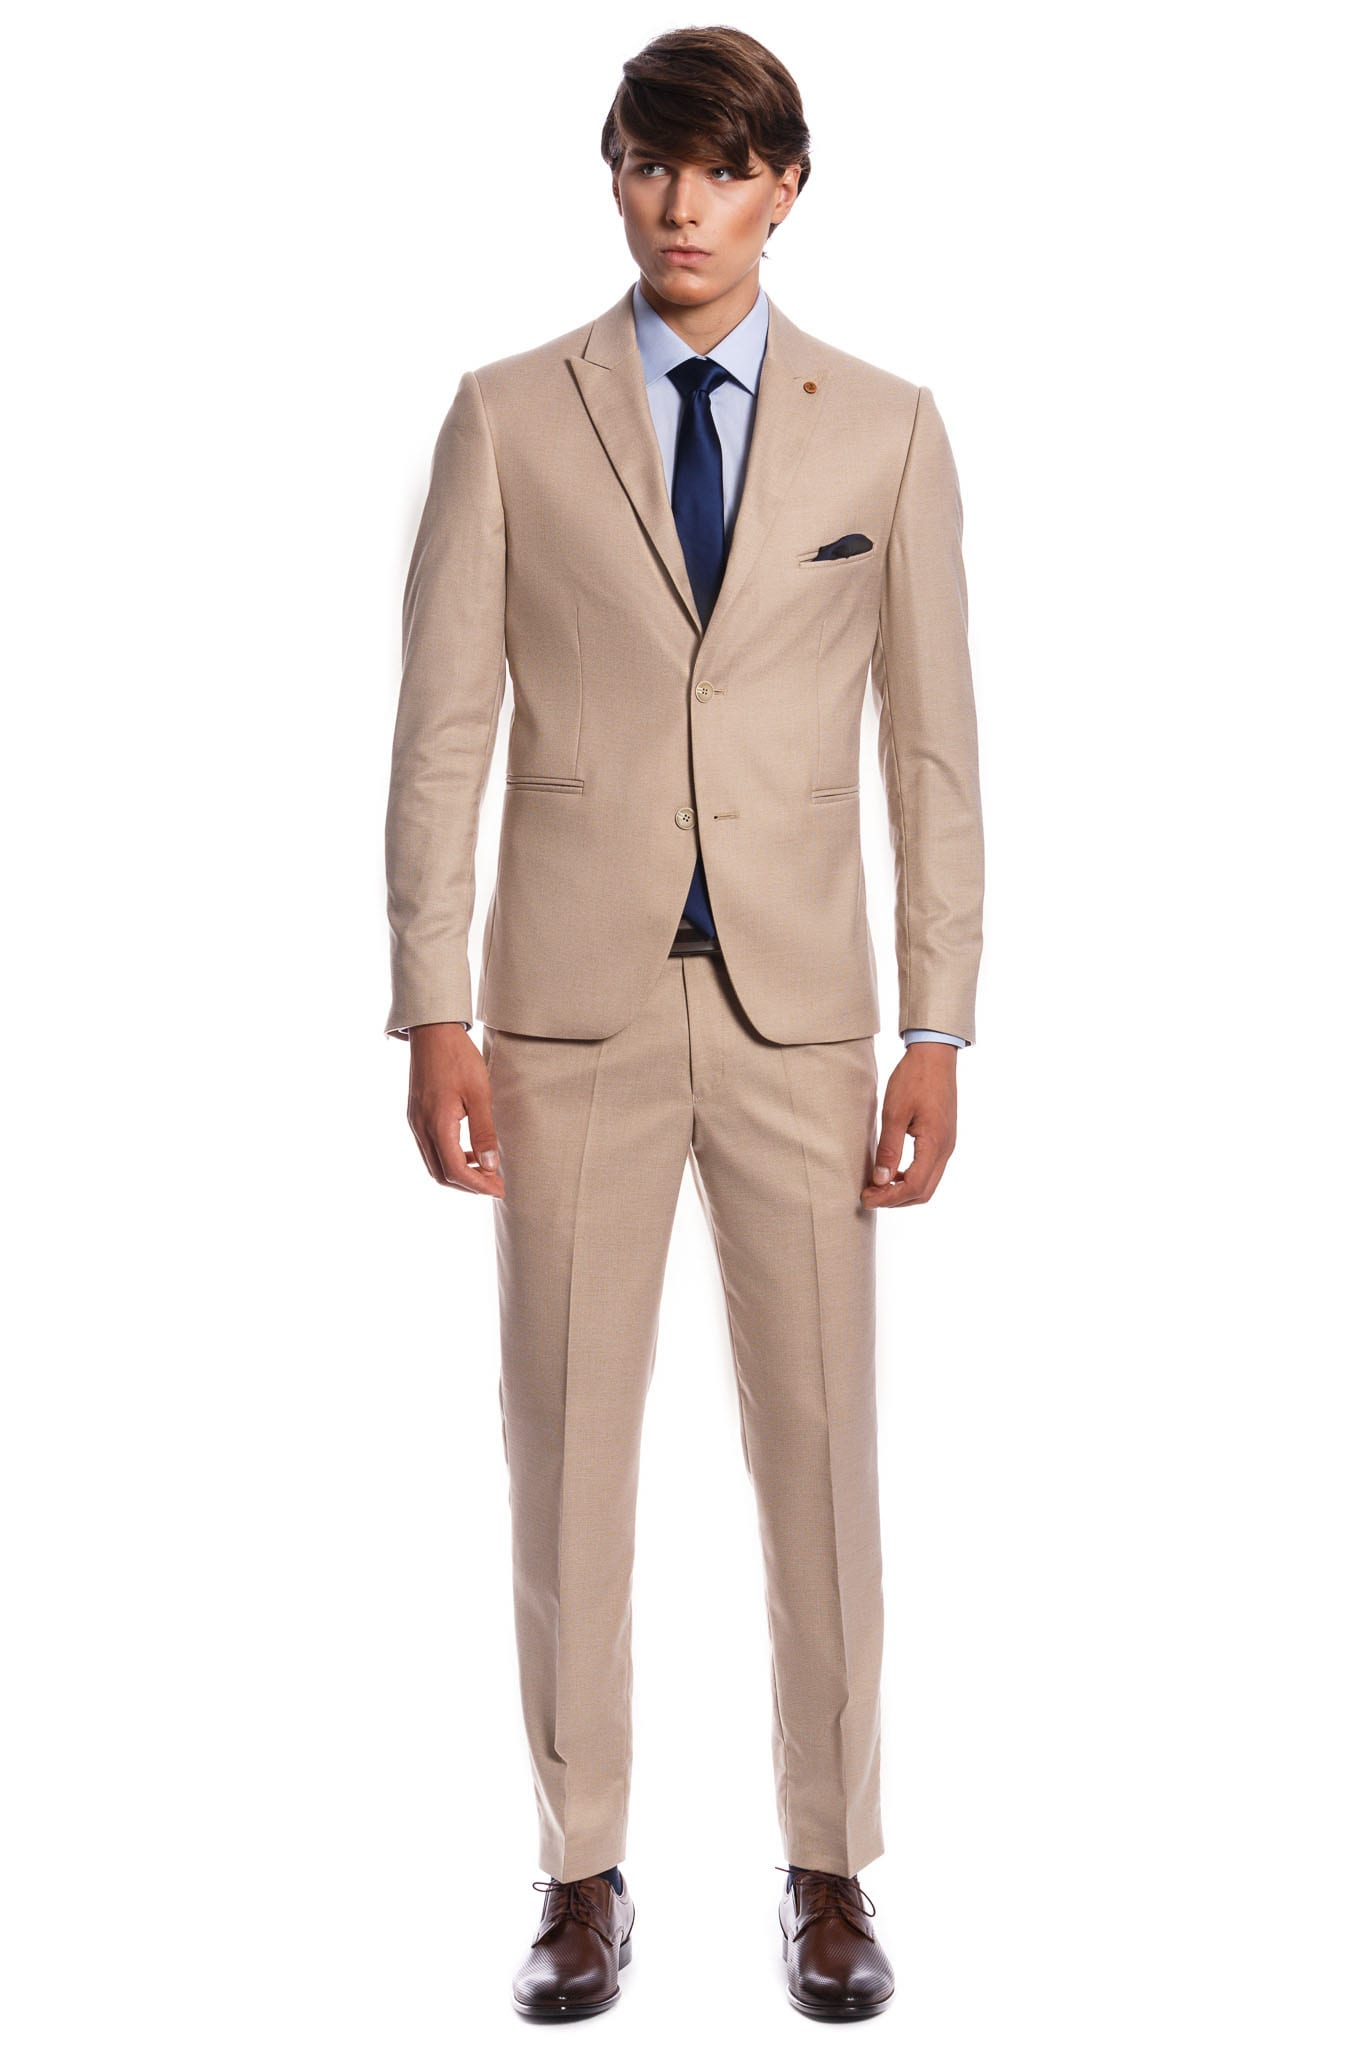 c2794240e0 Davide Drapp Slim Fit Öltöny - Elite Fashion Öltönyház